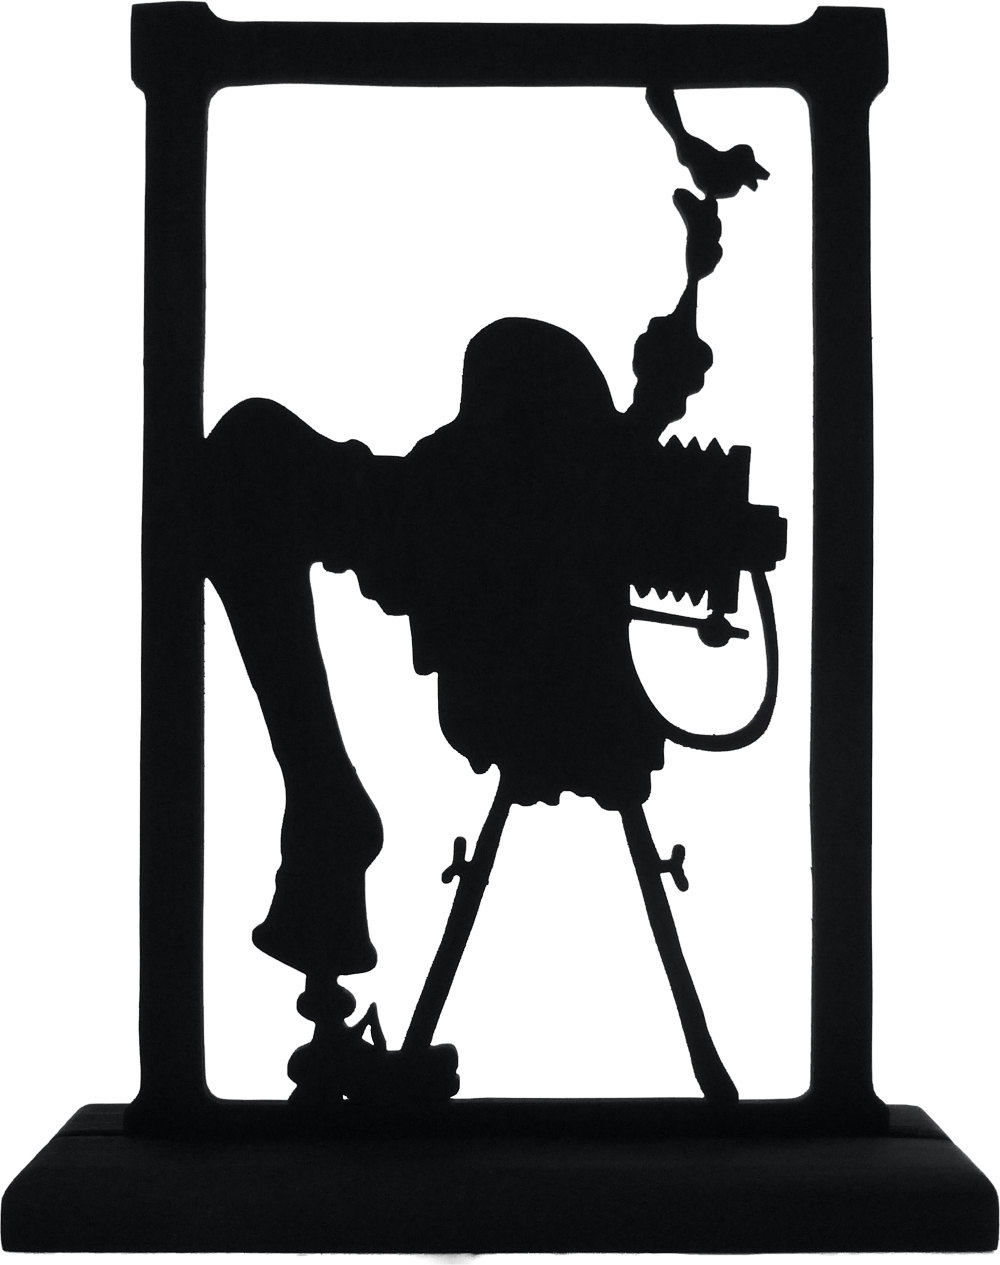 1000x1265 Old Time Photographer Handmade Wood Display Silhouette